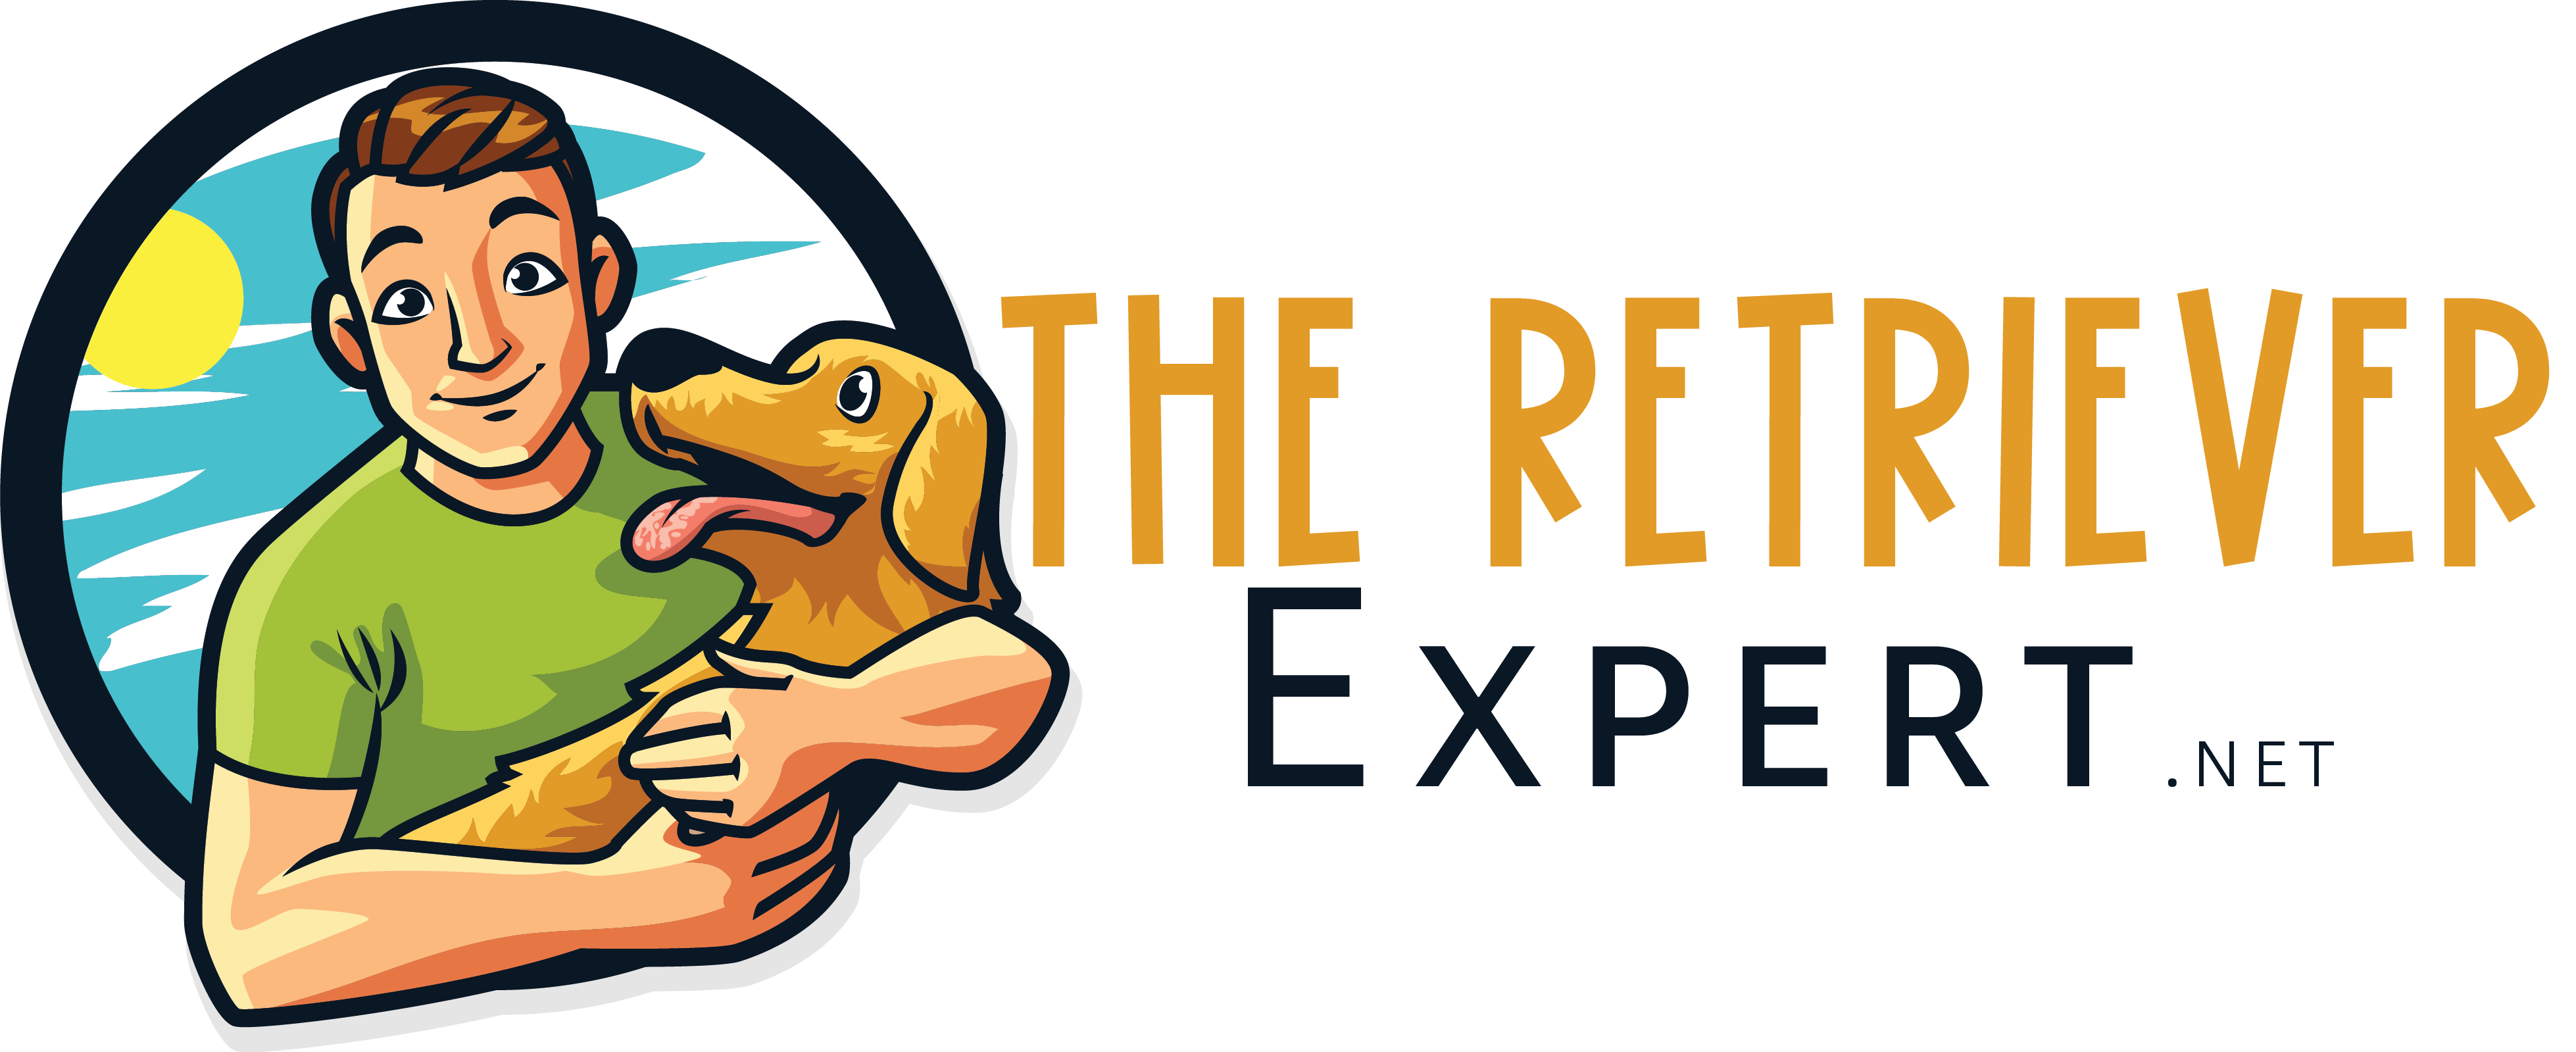 The Retriever Expert